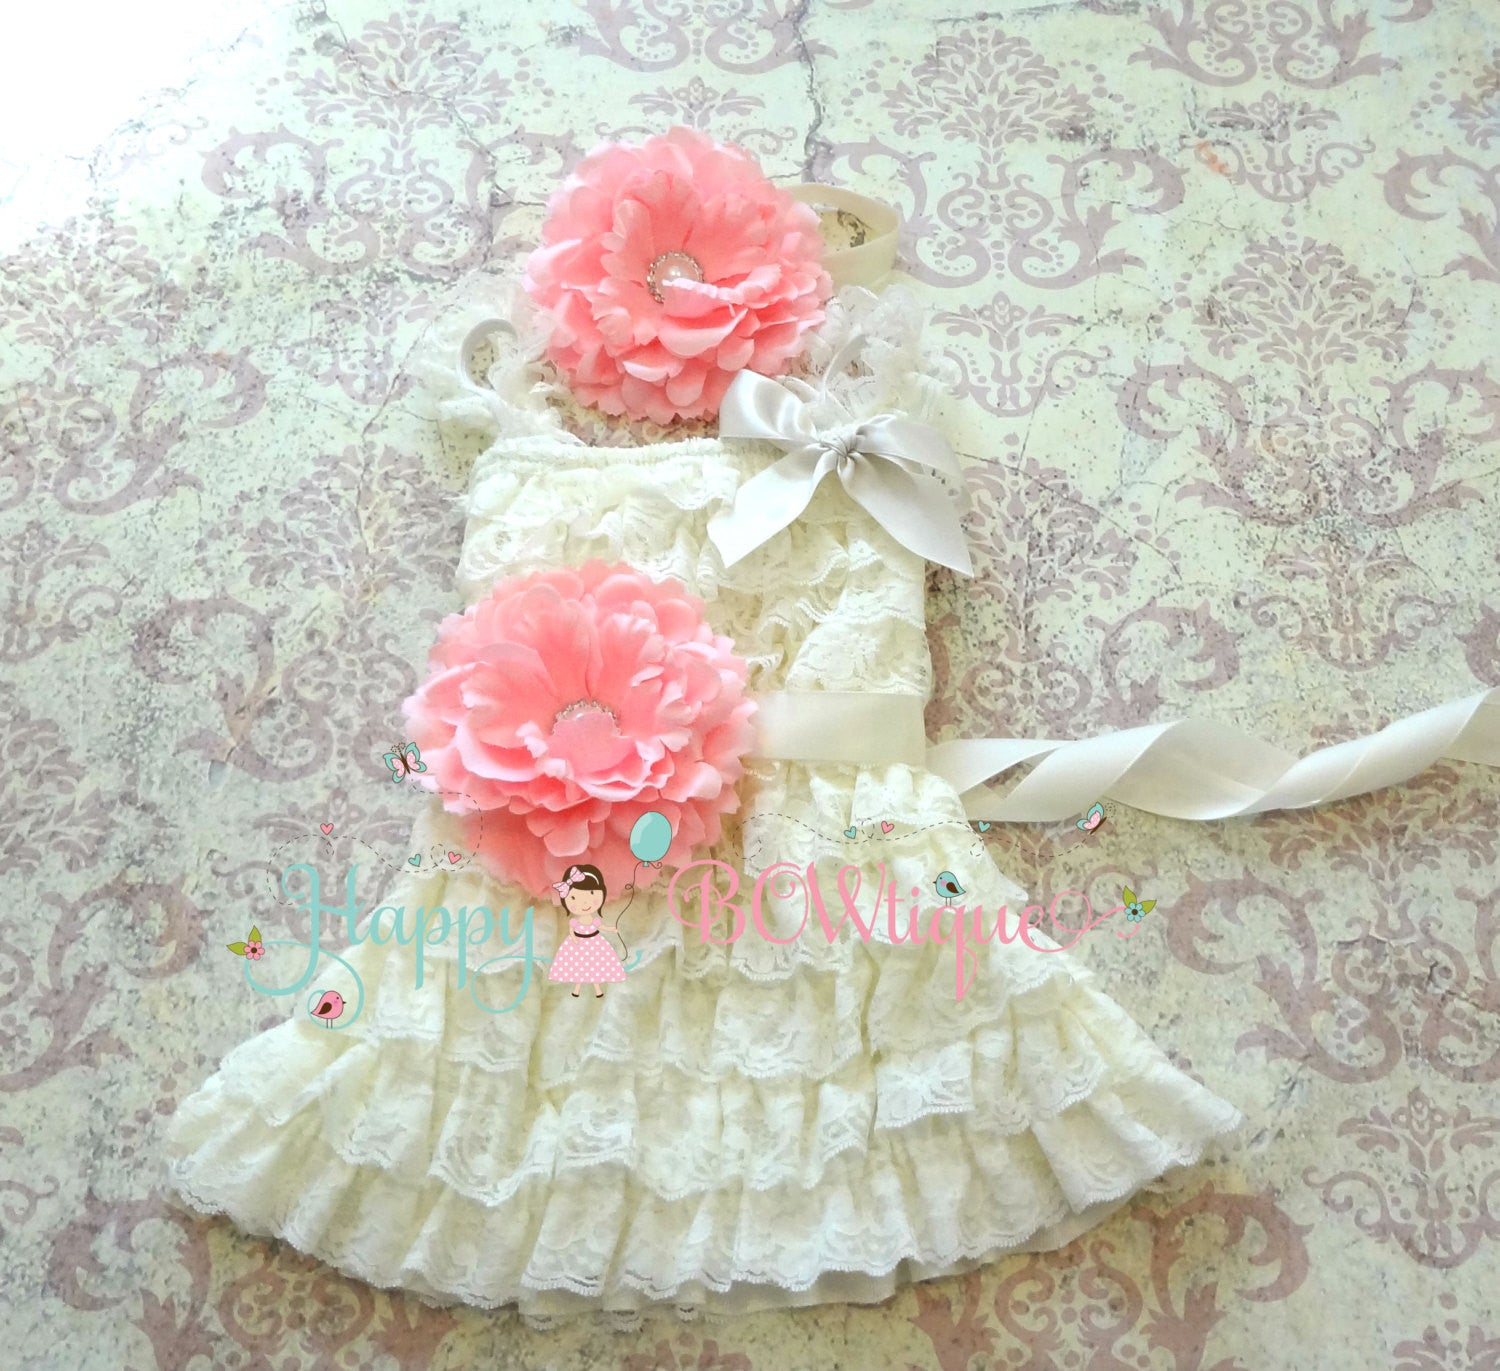 Flower Girl's Dress/ Victorian Pink Flower Girl's Lace Dress set - Happy BOWtique - children's clothing, Baby Girl clothing